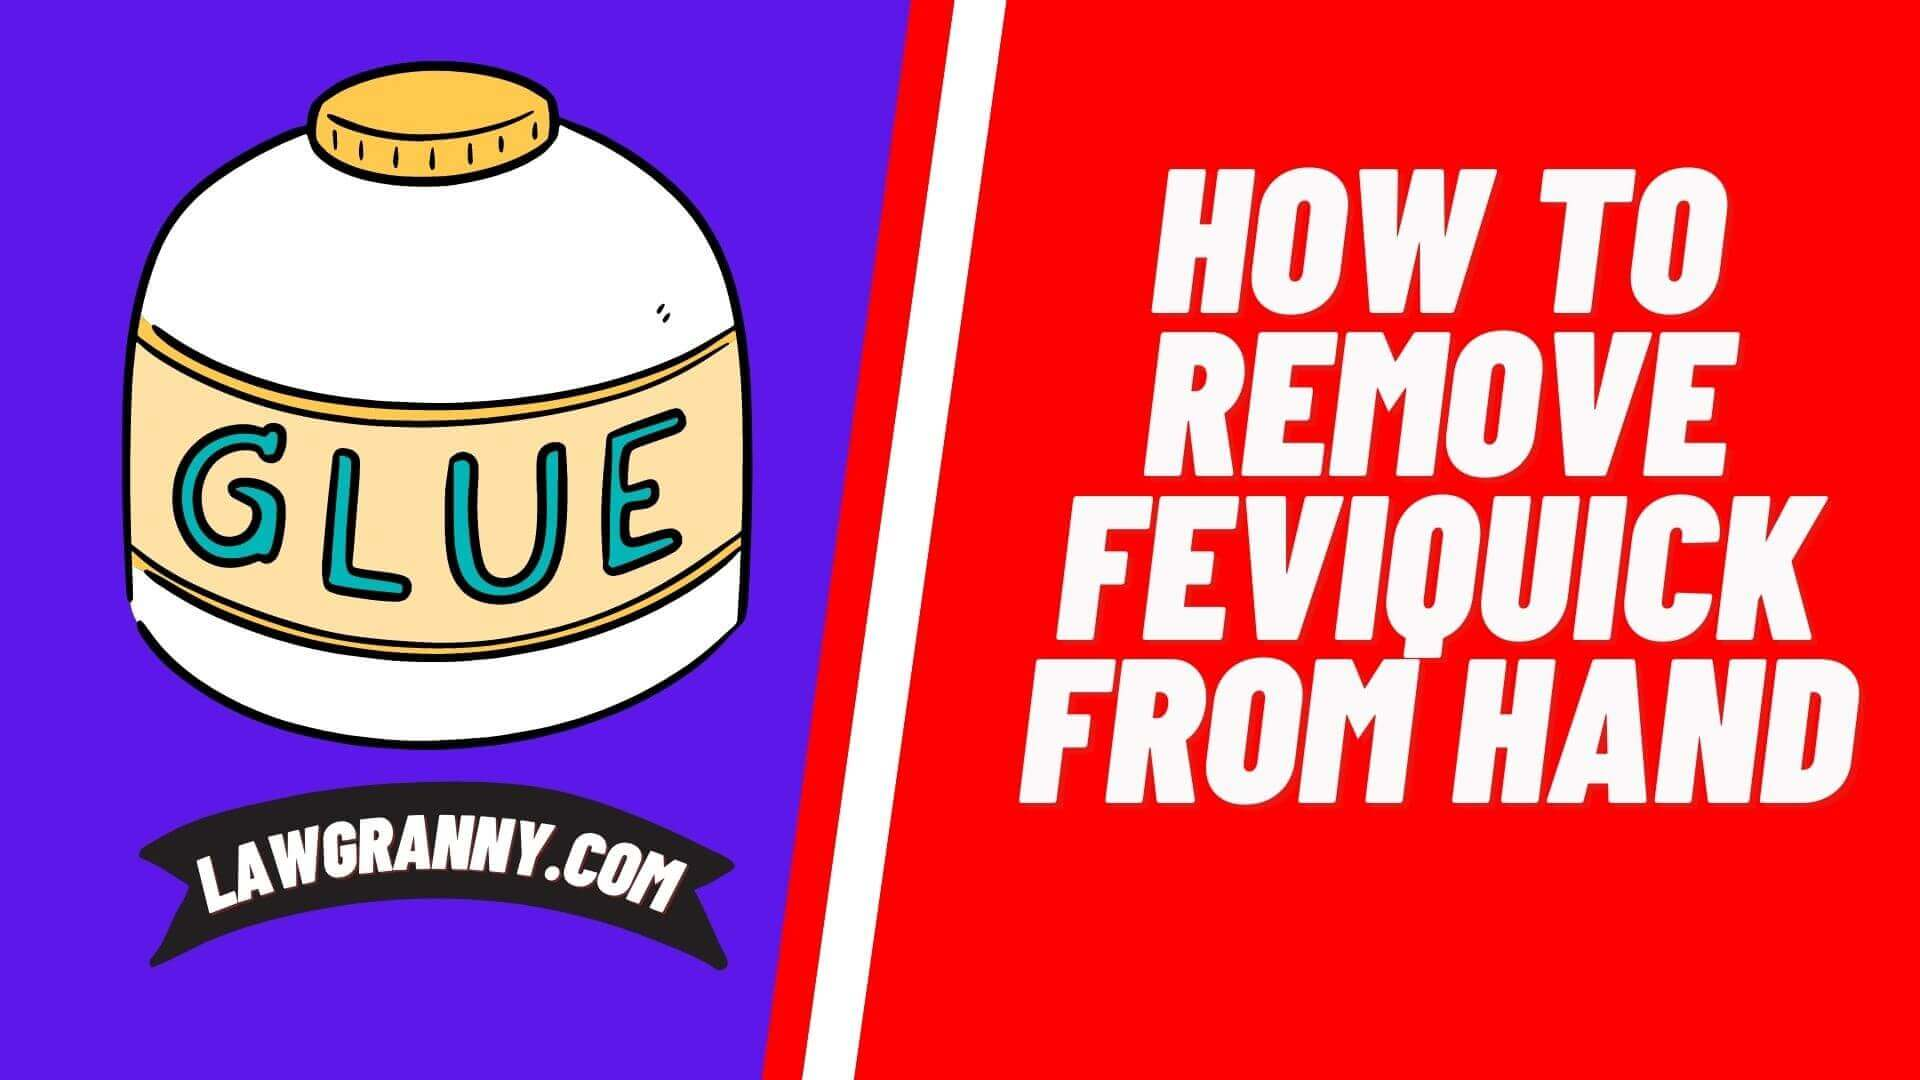 How To Remove Feviquick From Hand